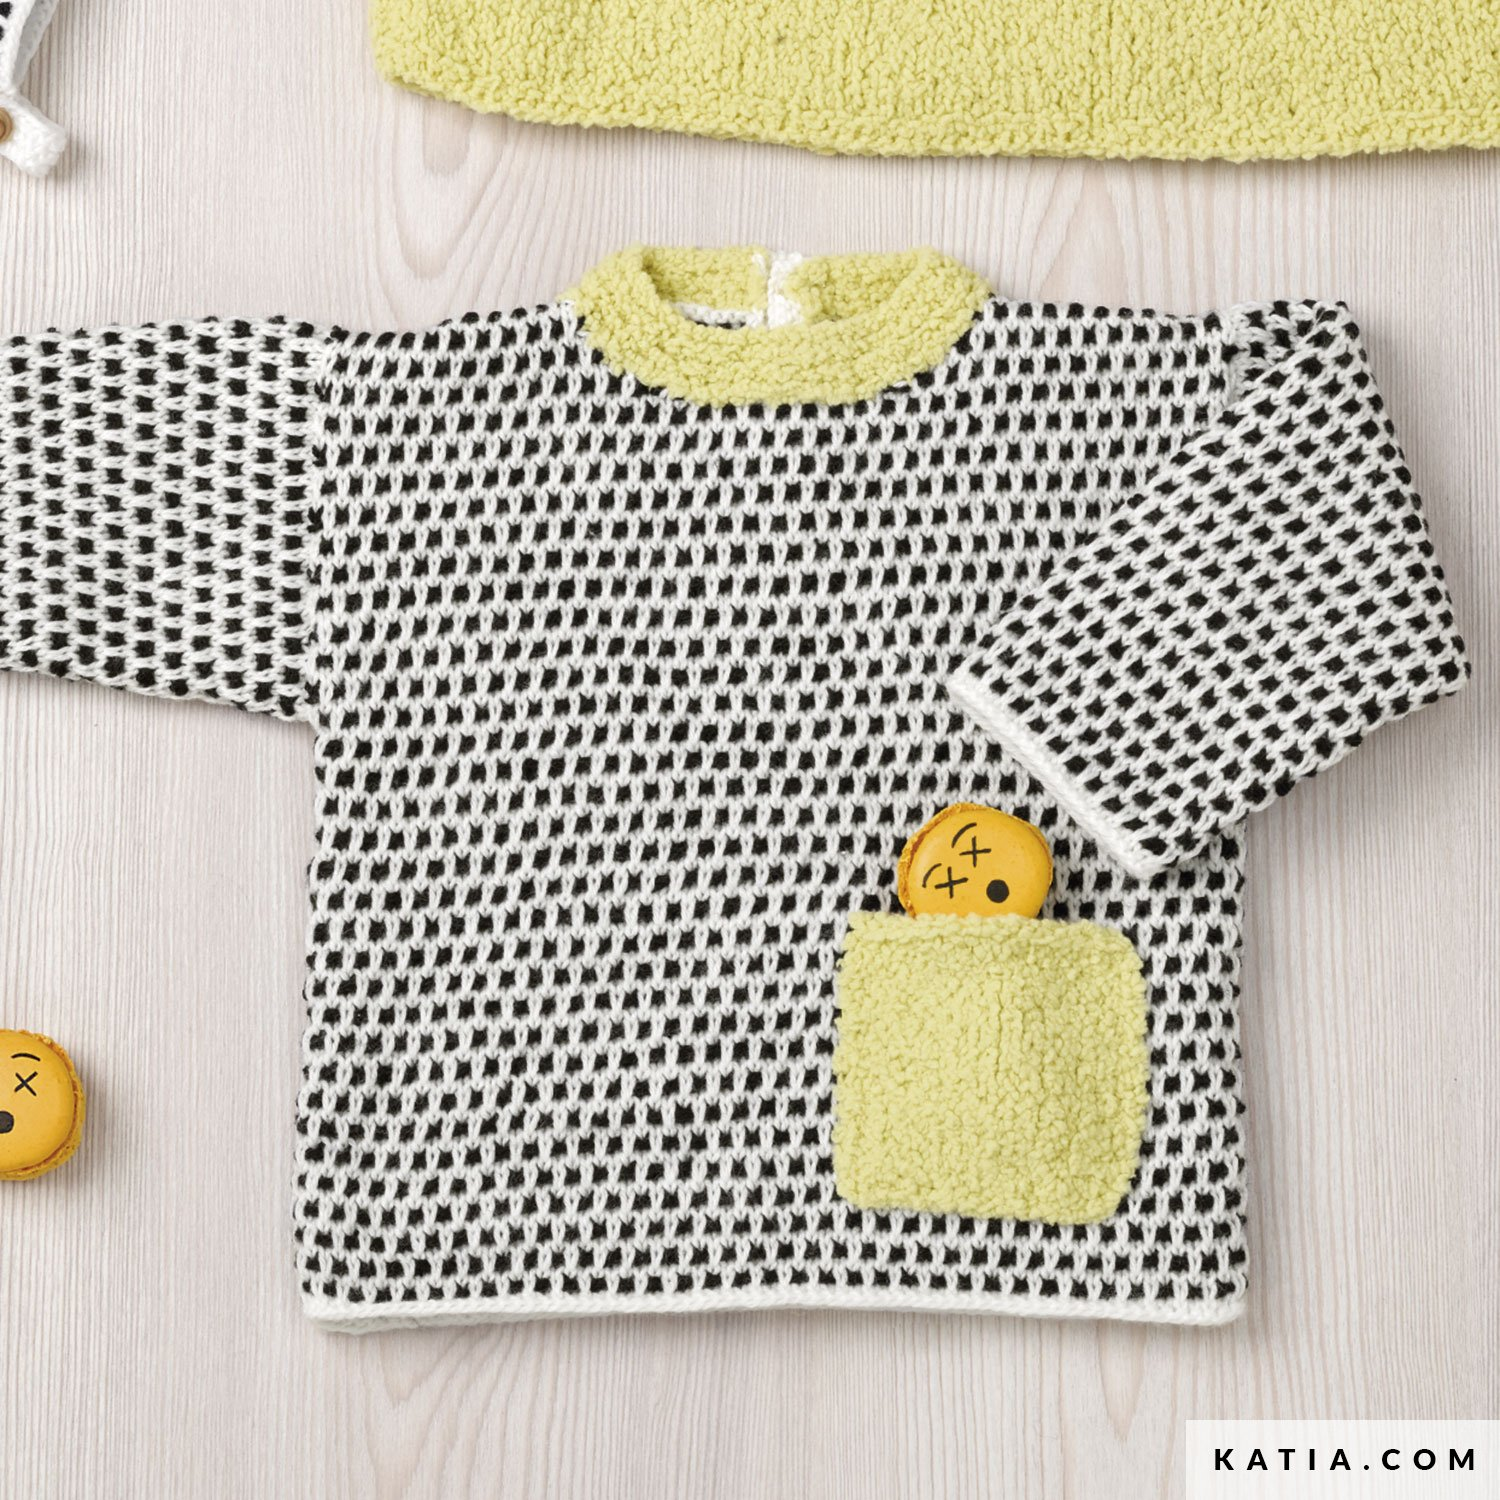 3b786d785c9a7 ... pattern knit crochet baby sweater autumn winter katia 6090 52 g crazy  price 1e2a0 1f21d ...